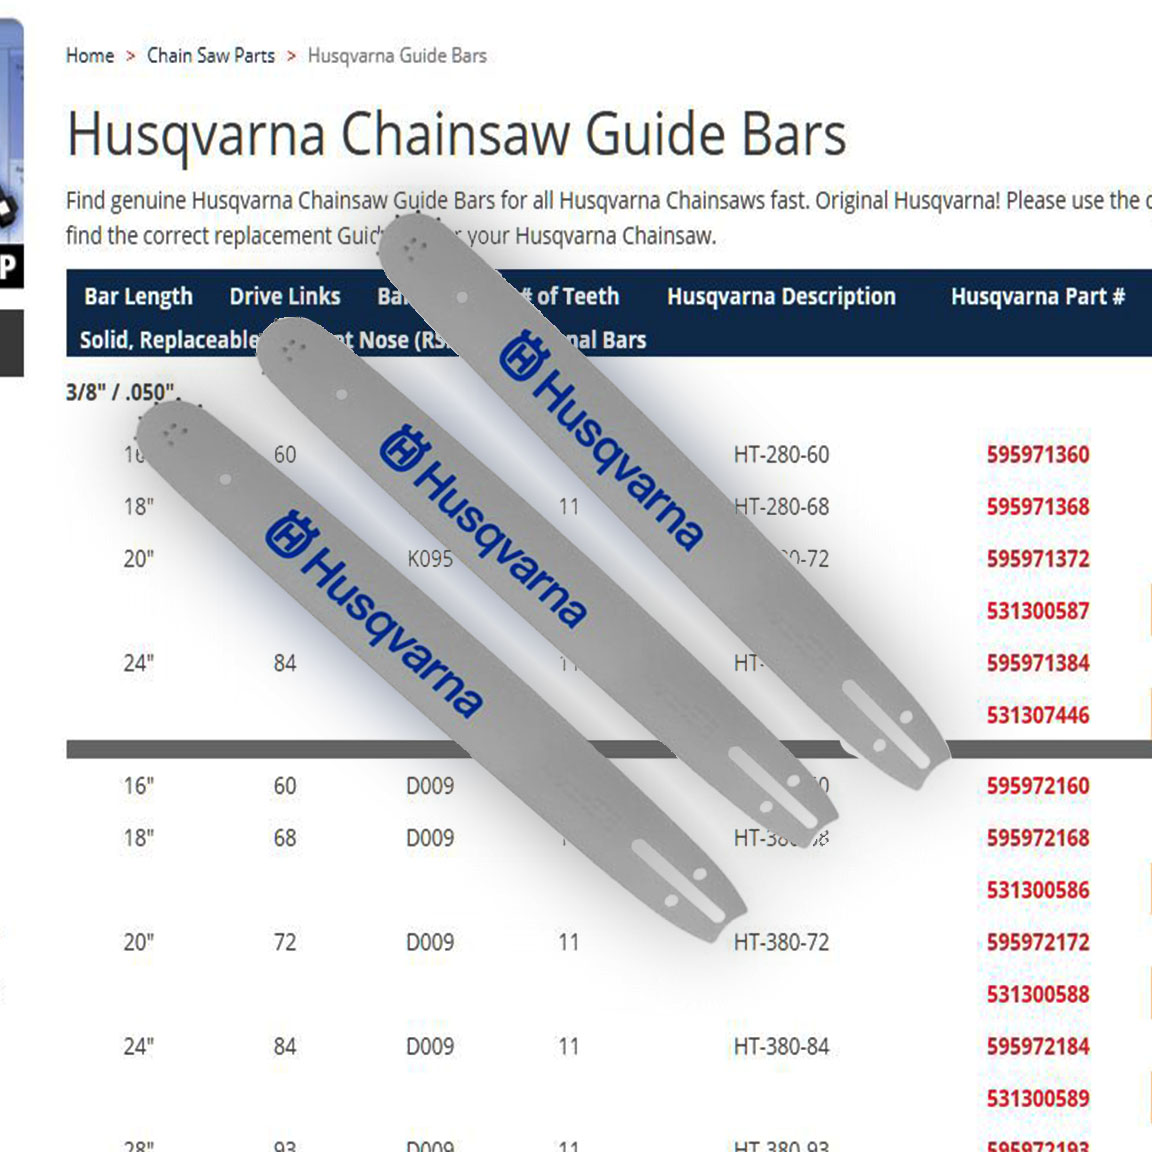 Husqvarna Guide Bars Chart